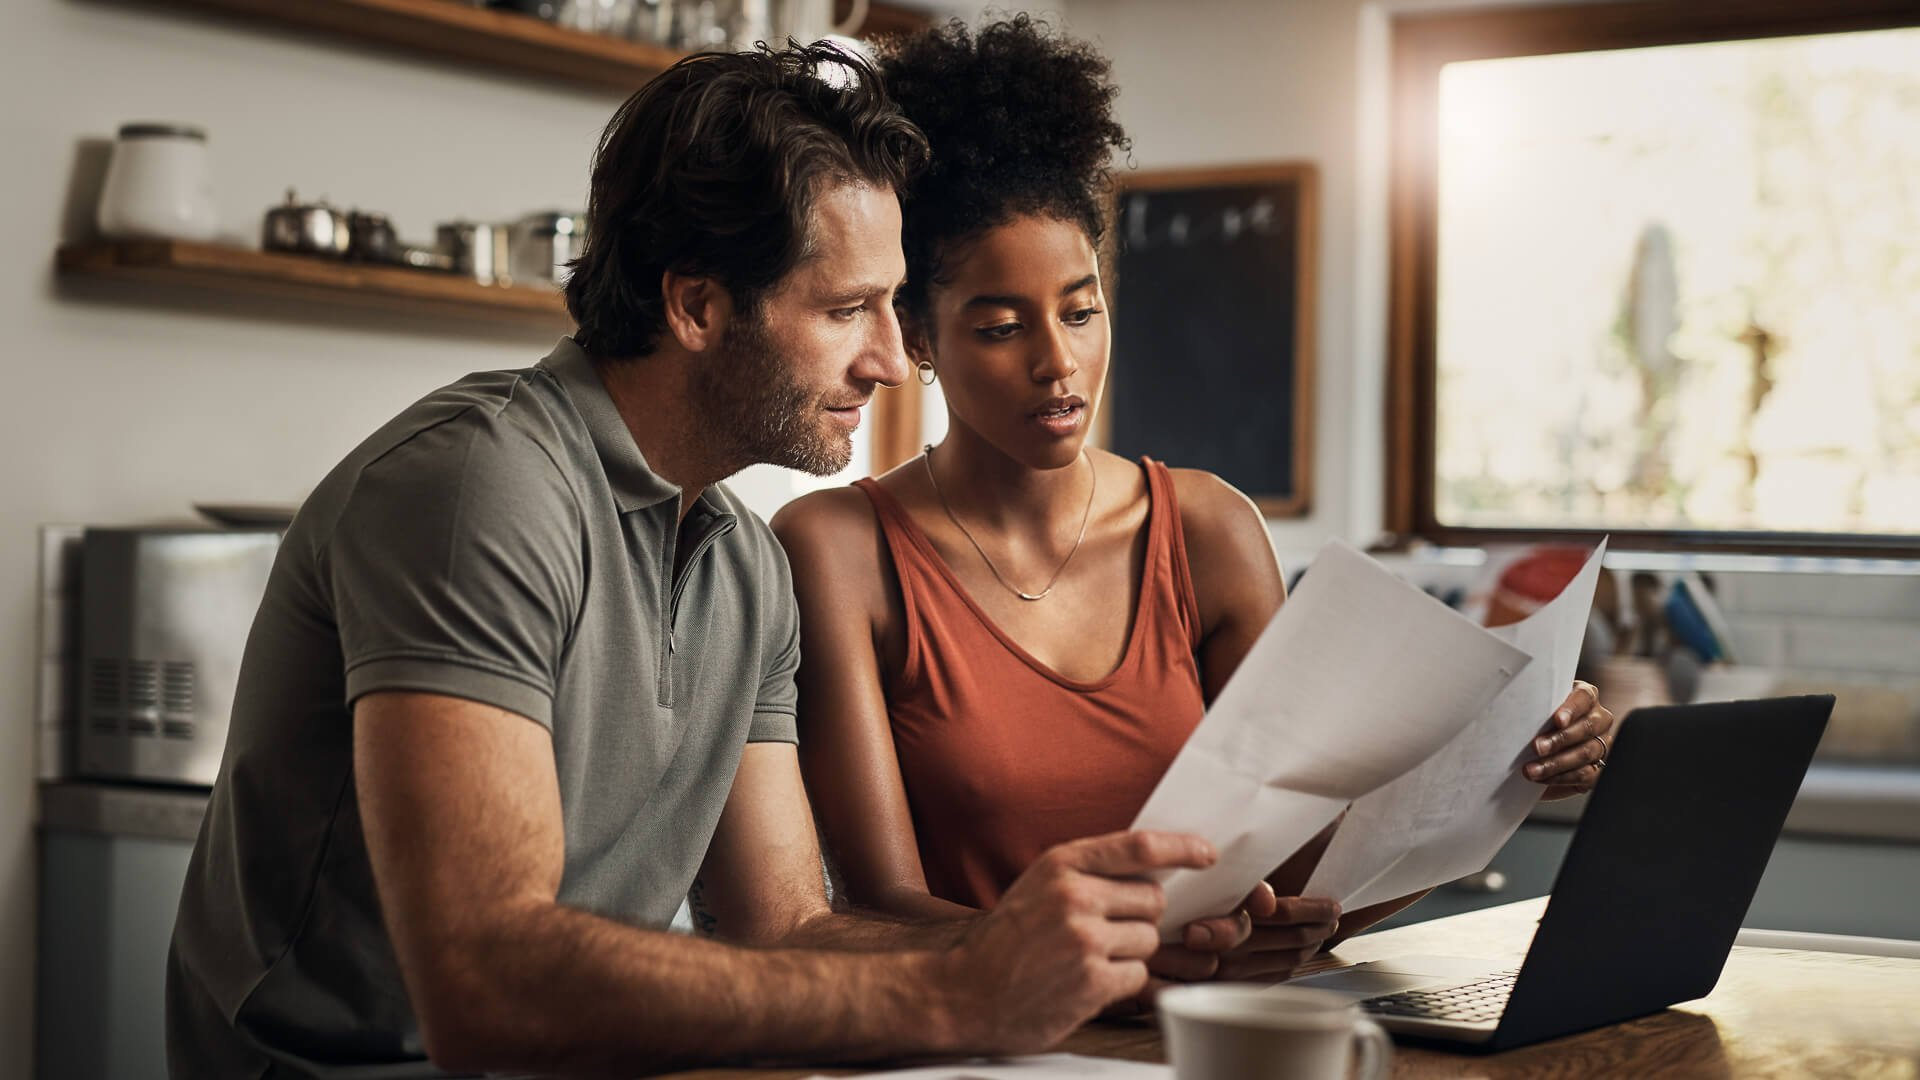 America is Reopening: Top tips to keep your finances on track